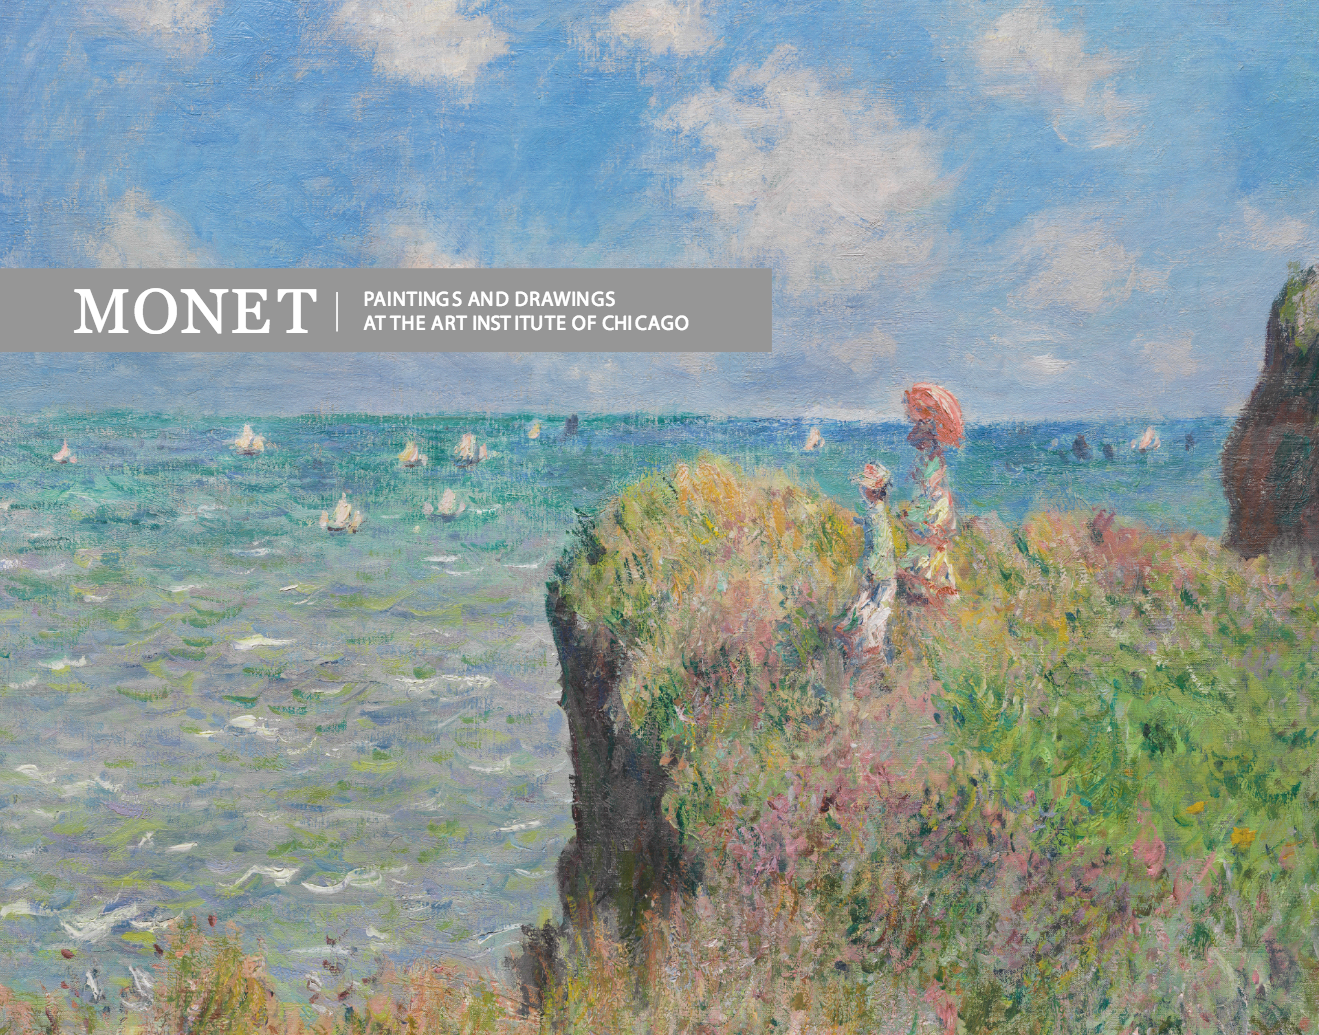 Monet Paintings and Drawings at the Art Institute of Chicago